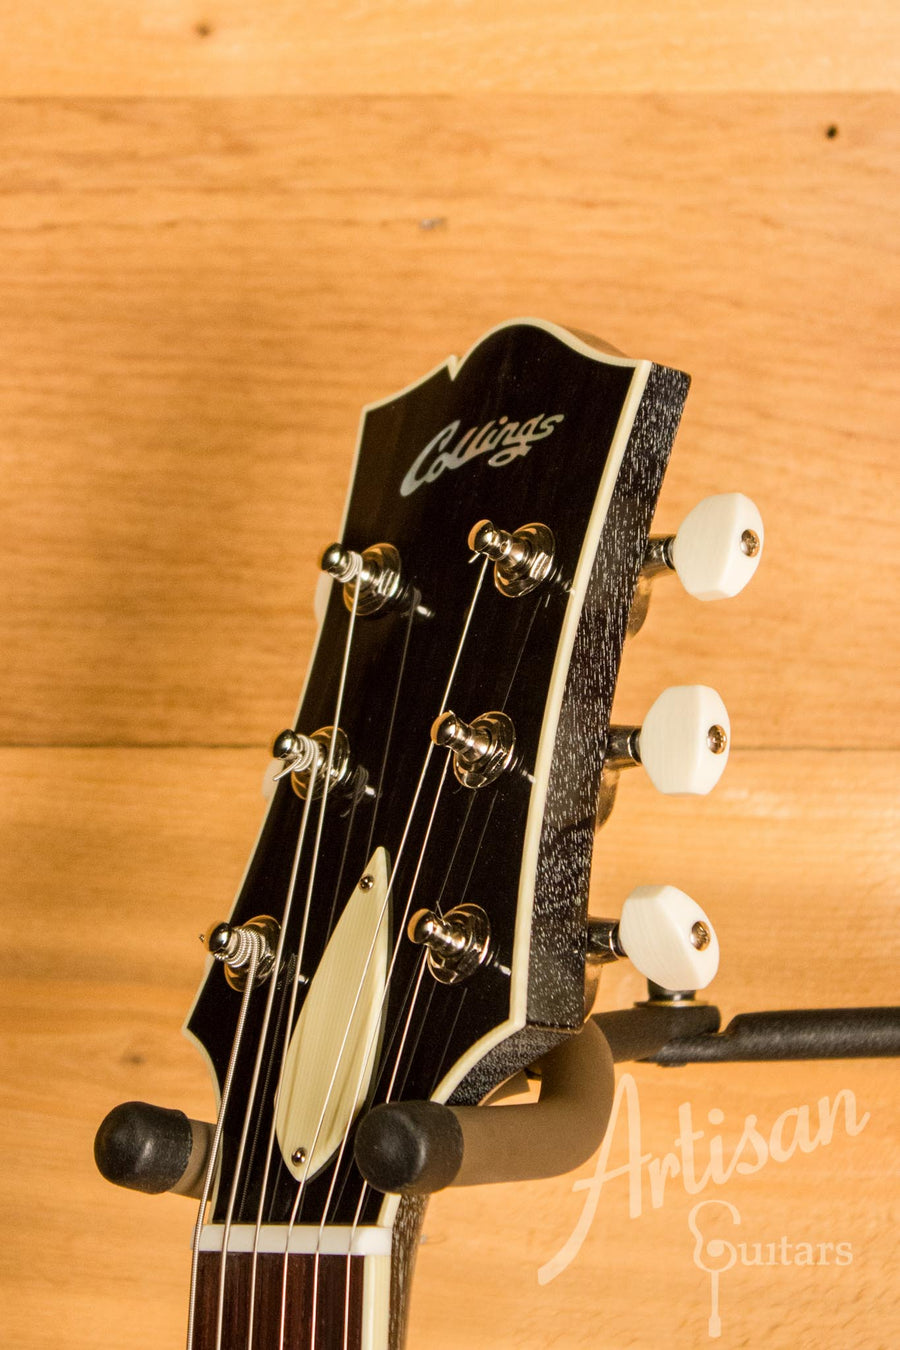 Collings SoCo Deluxe Jet Black Top Dog Hair Finish with Italian Spruce Top ID-10608 - Artisan Guitars